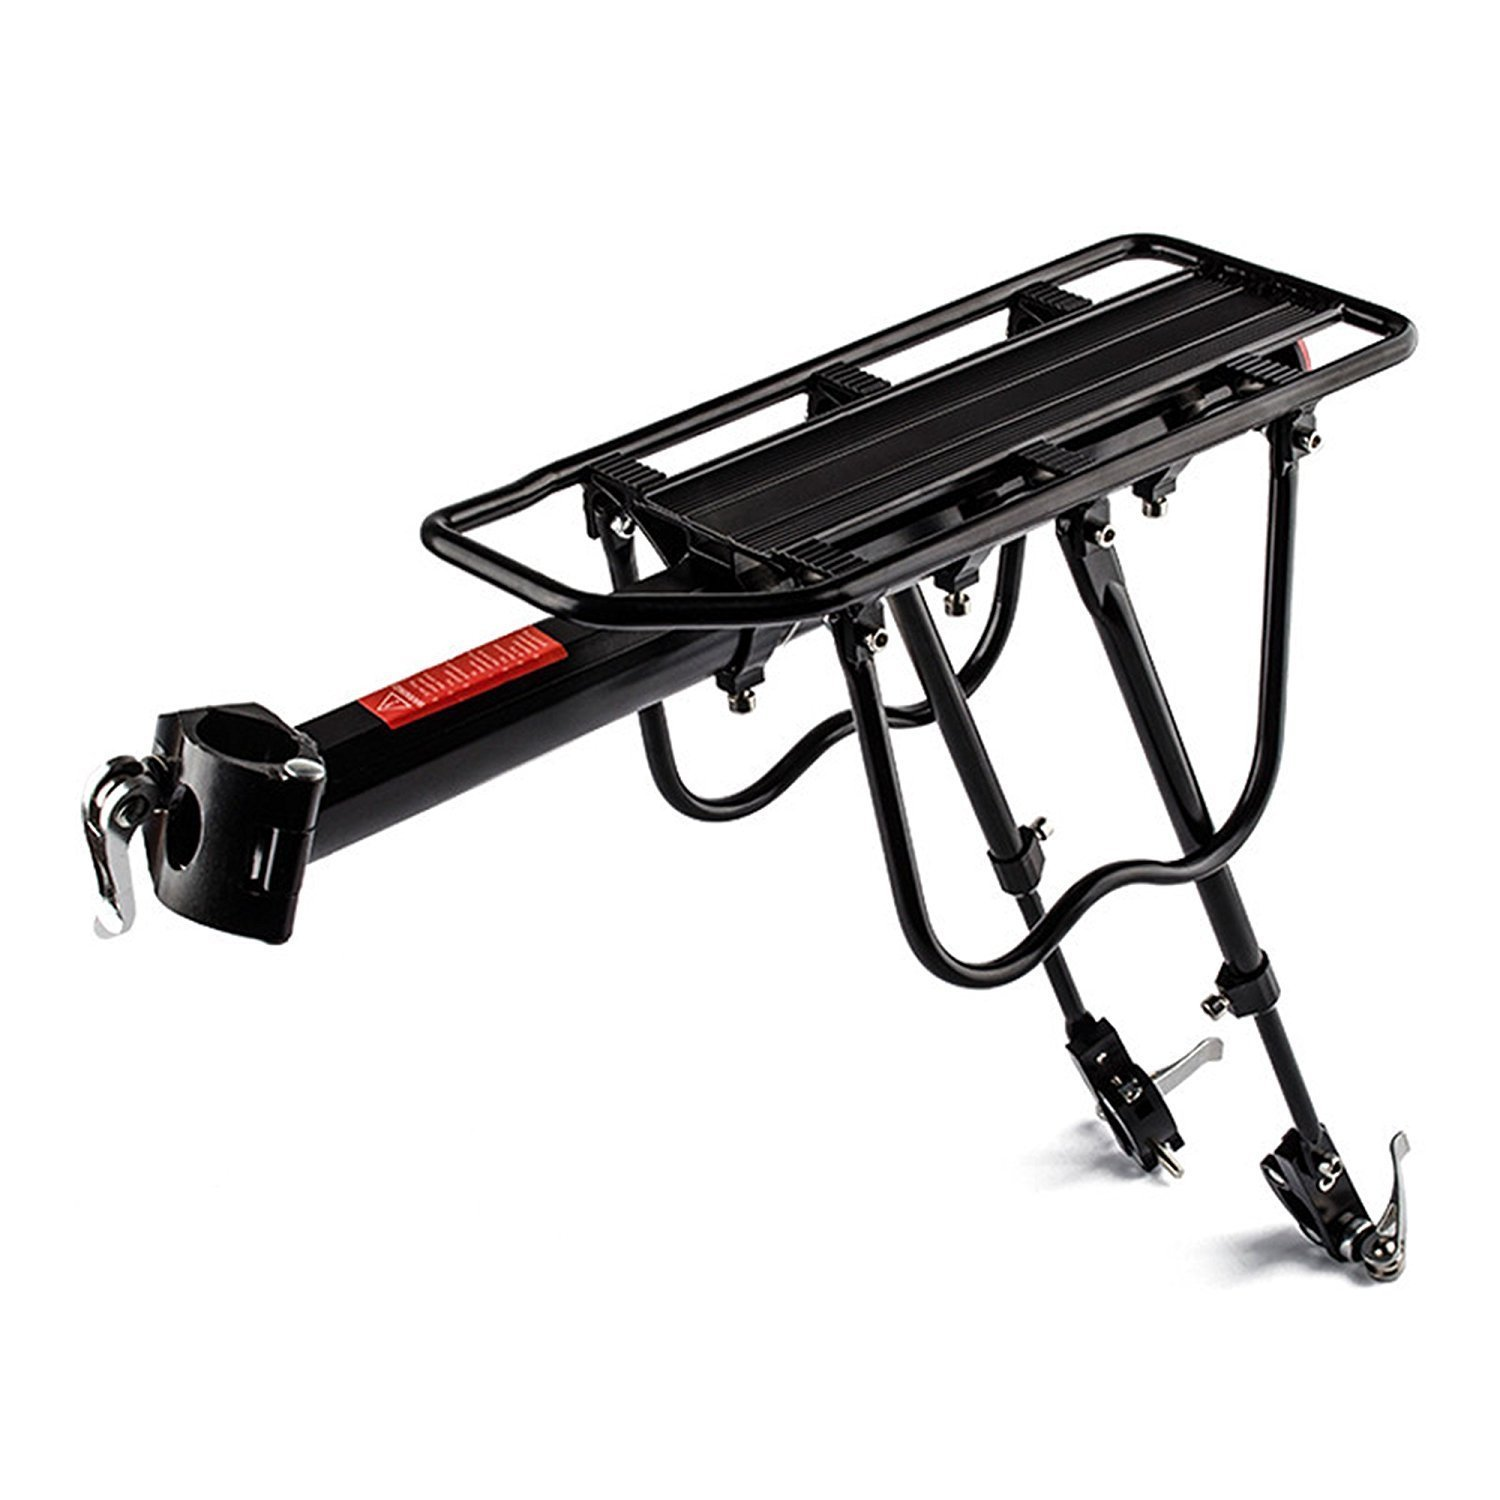 COMINGFIT® Upgrade 50kg Capacity Aluminium Carrier Rear Bicycle Pannier Full Quick Release Rack with Reflector